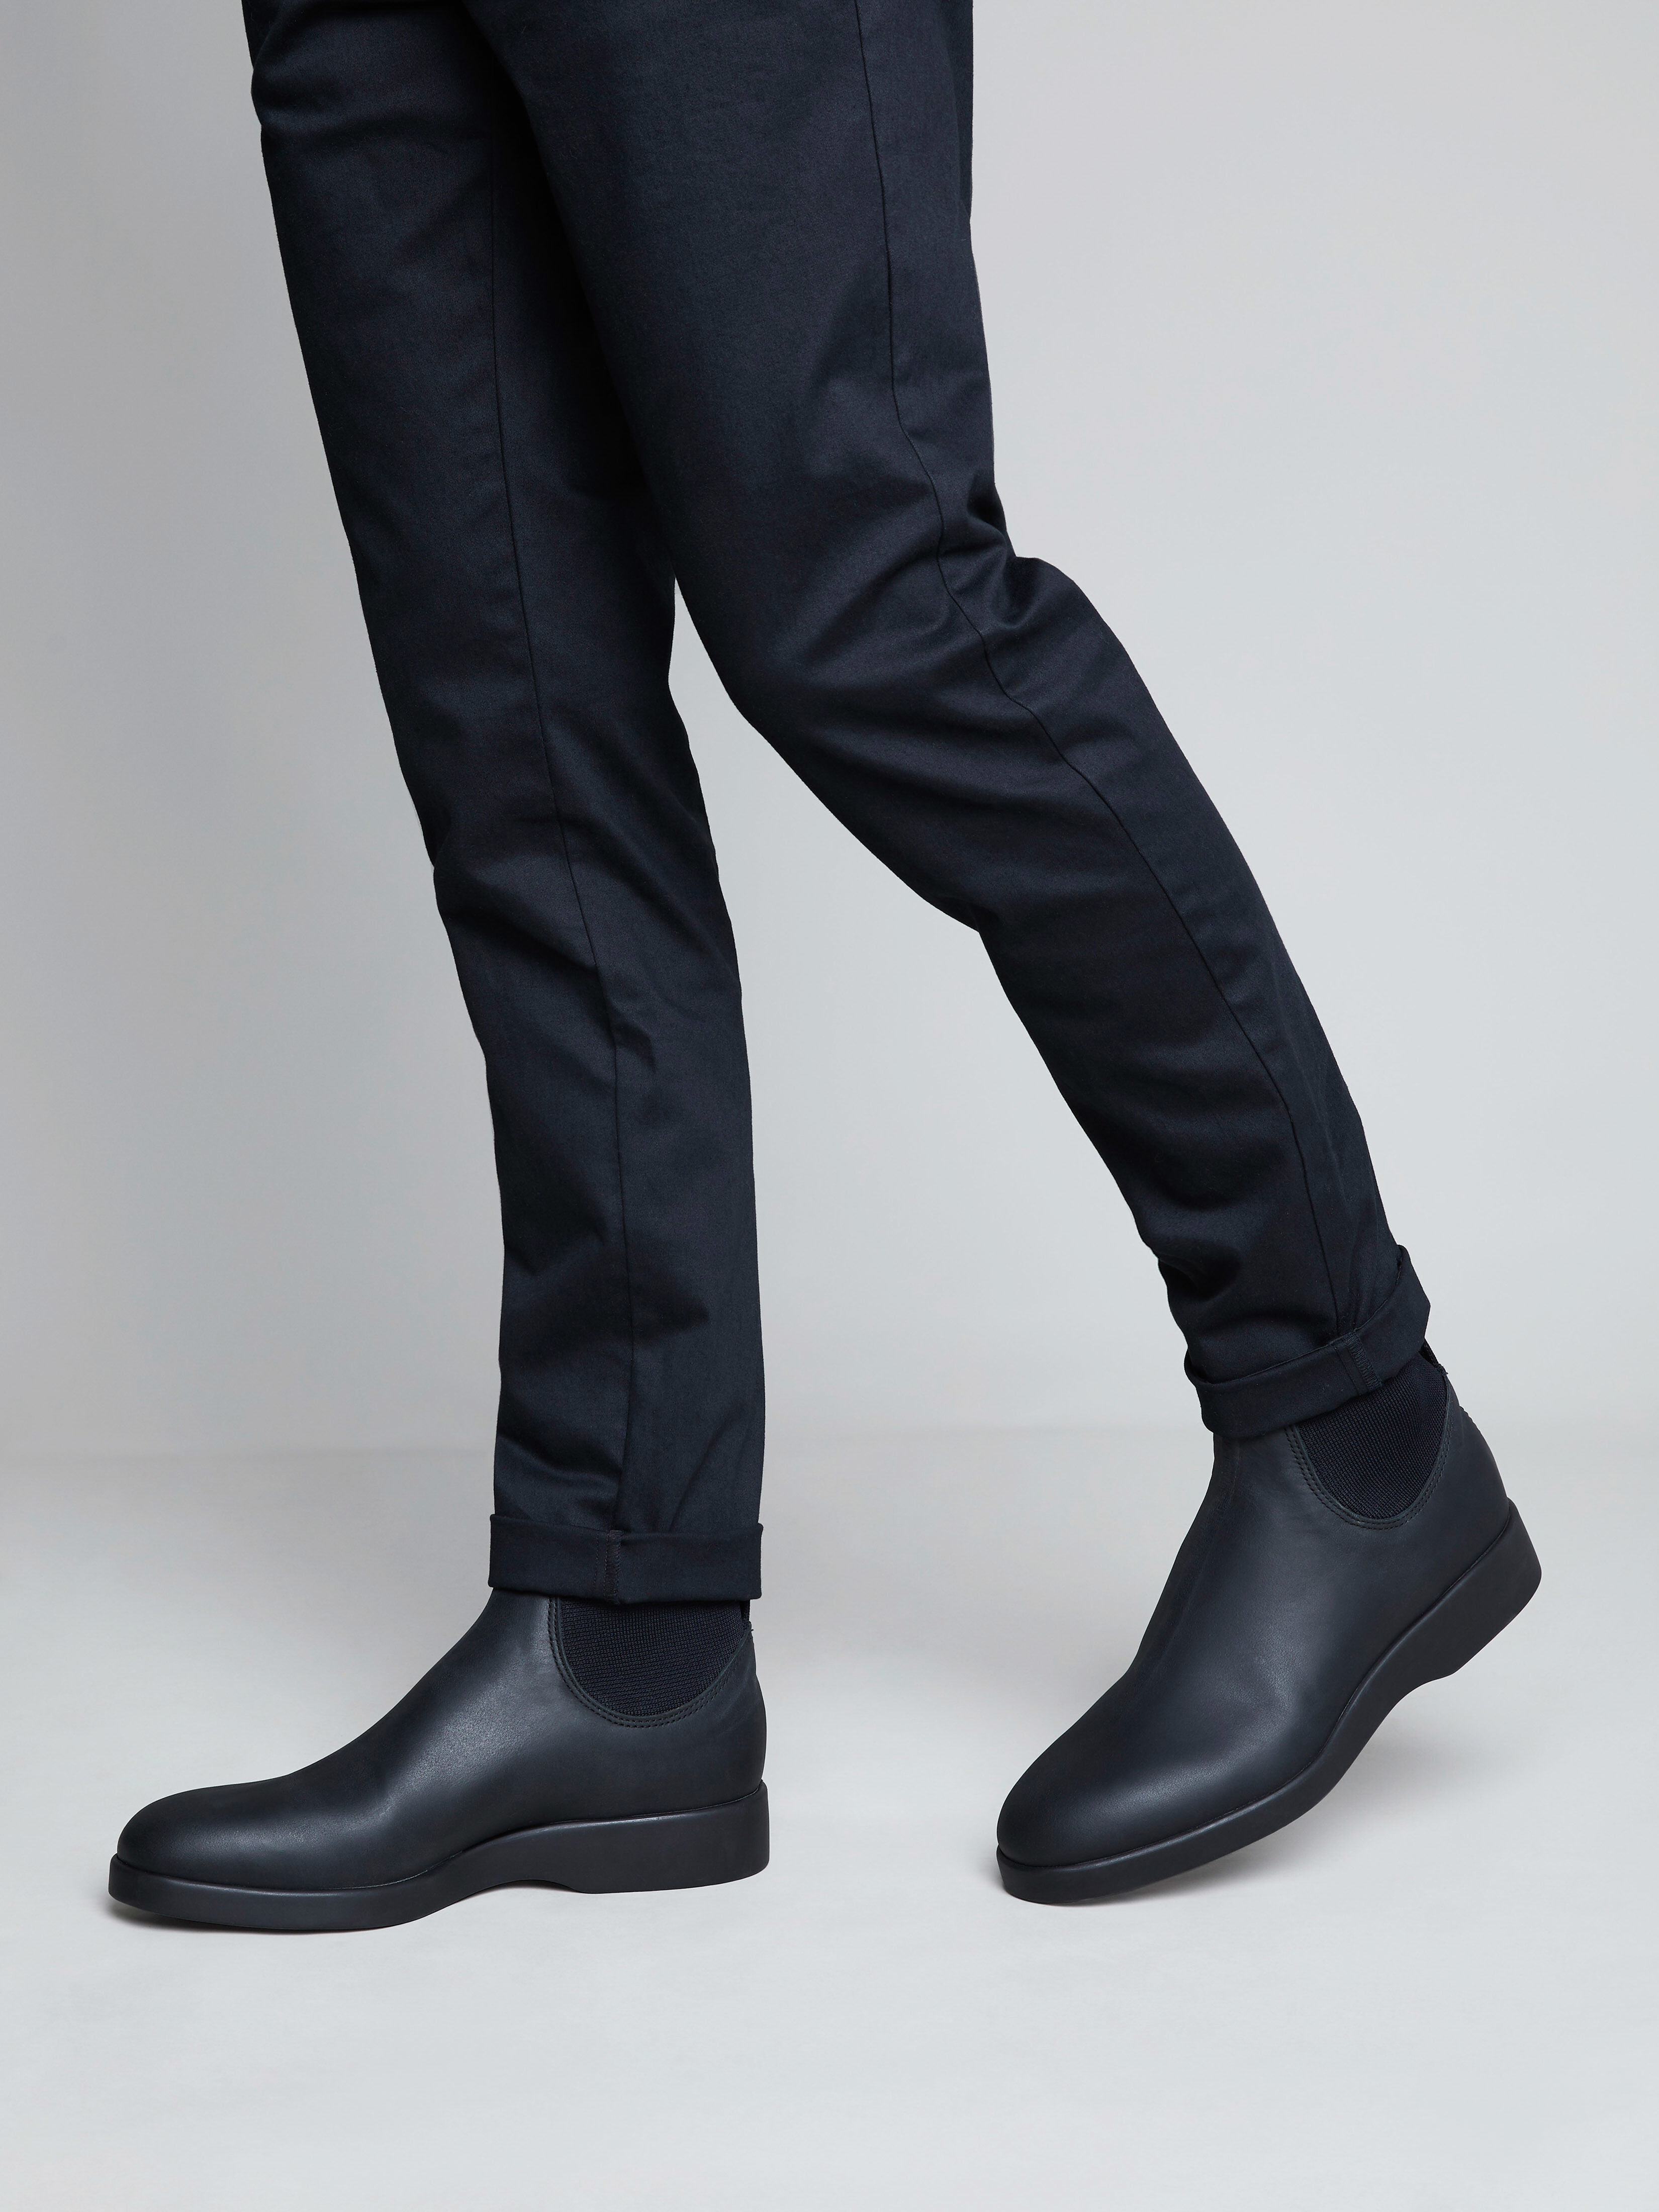 The Yard Boot 365 - leather - Boots at